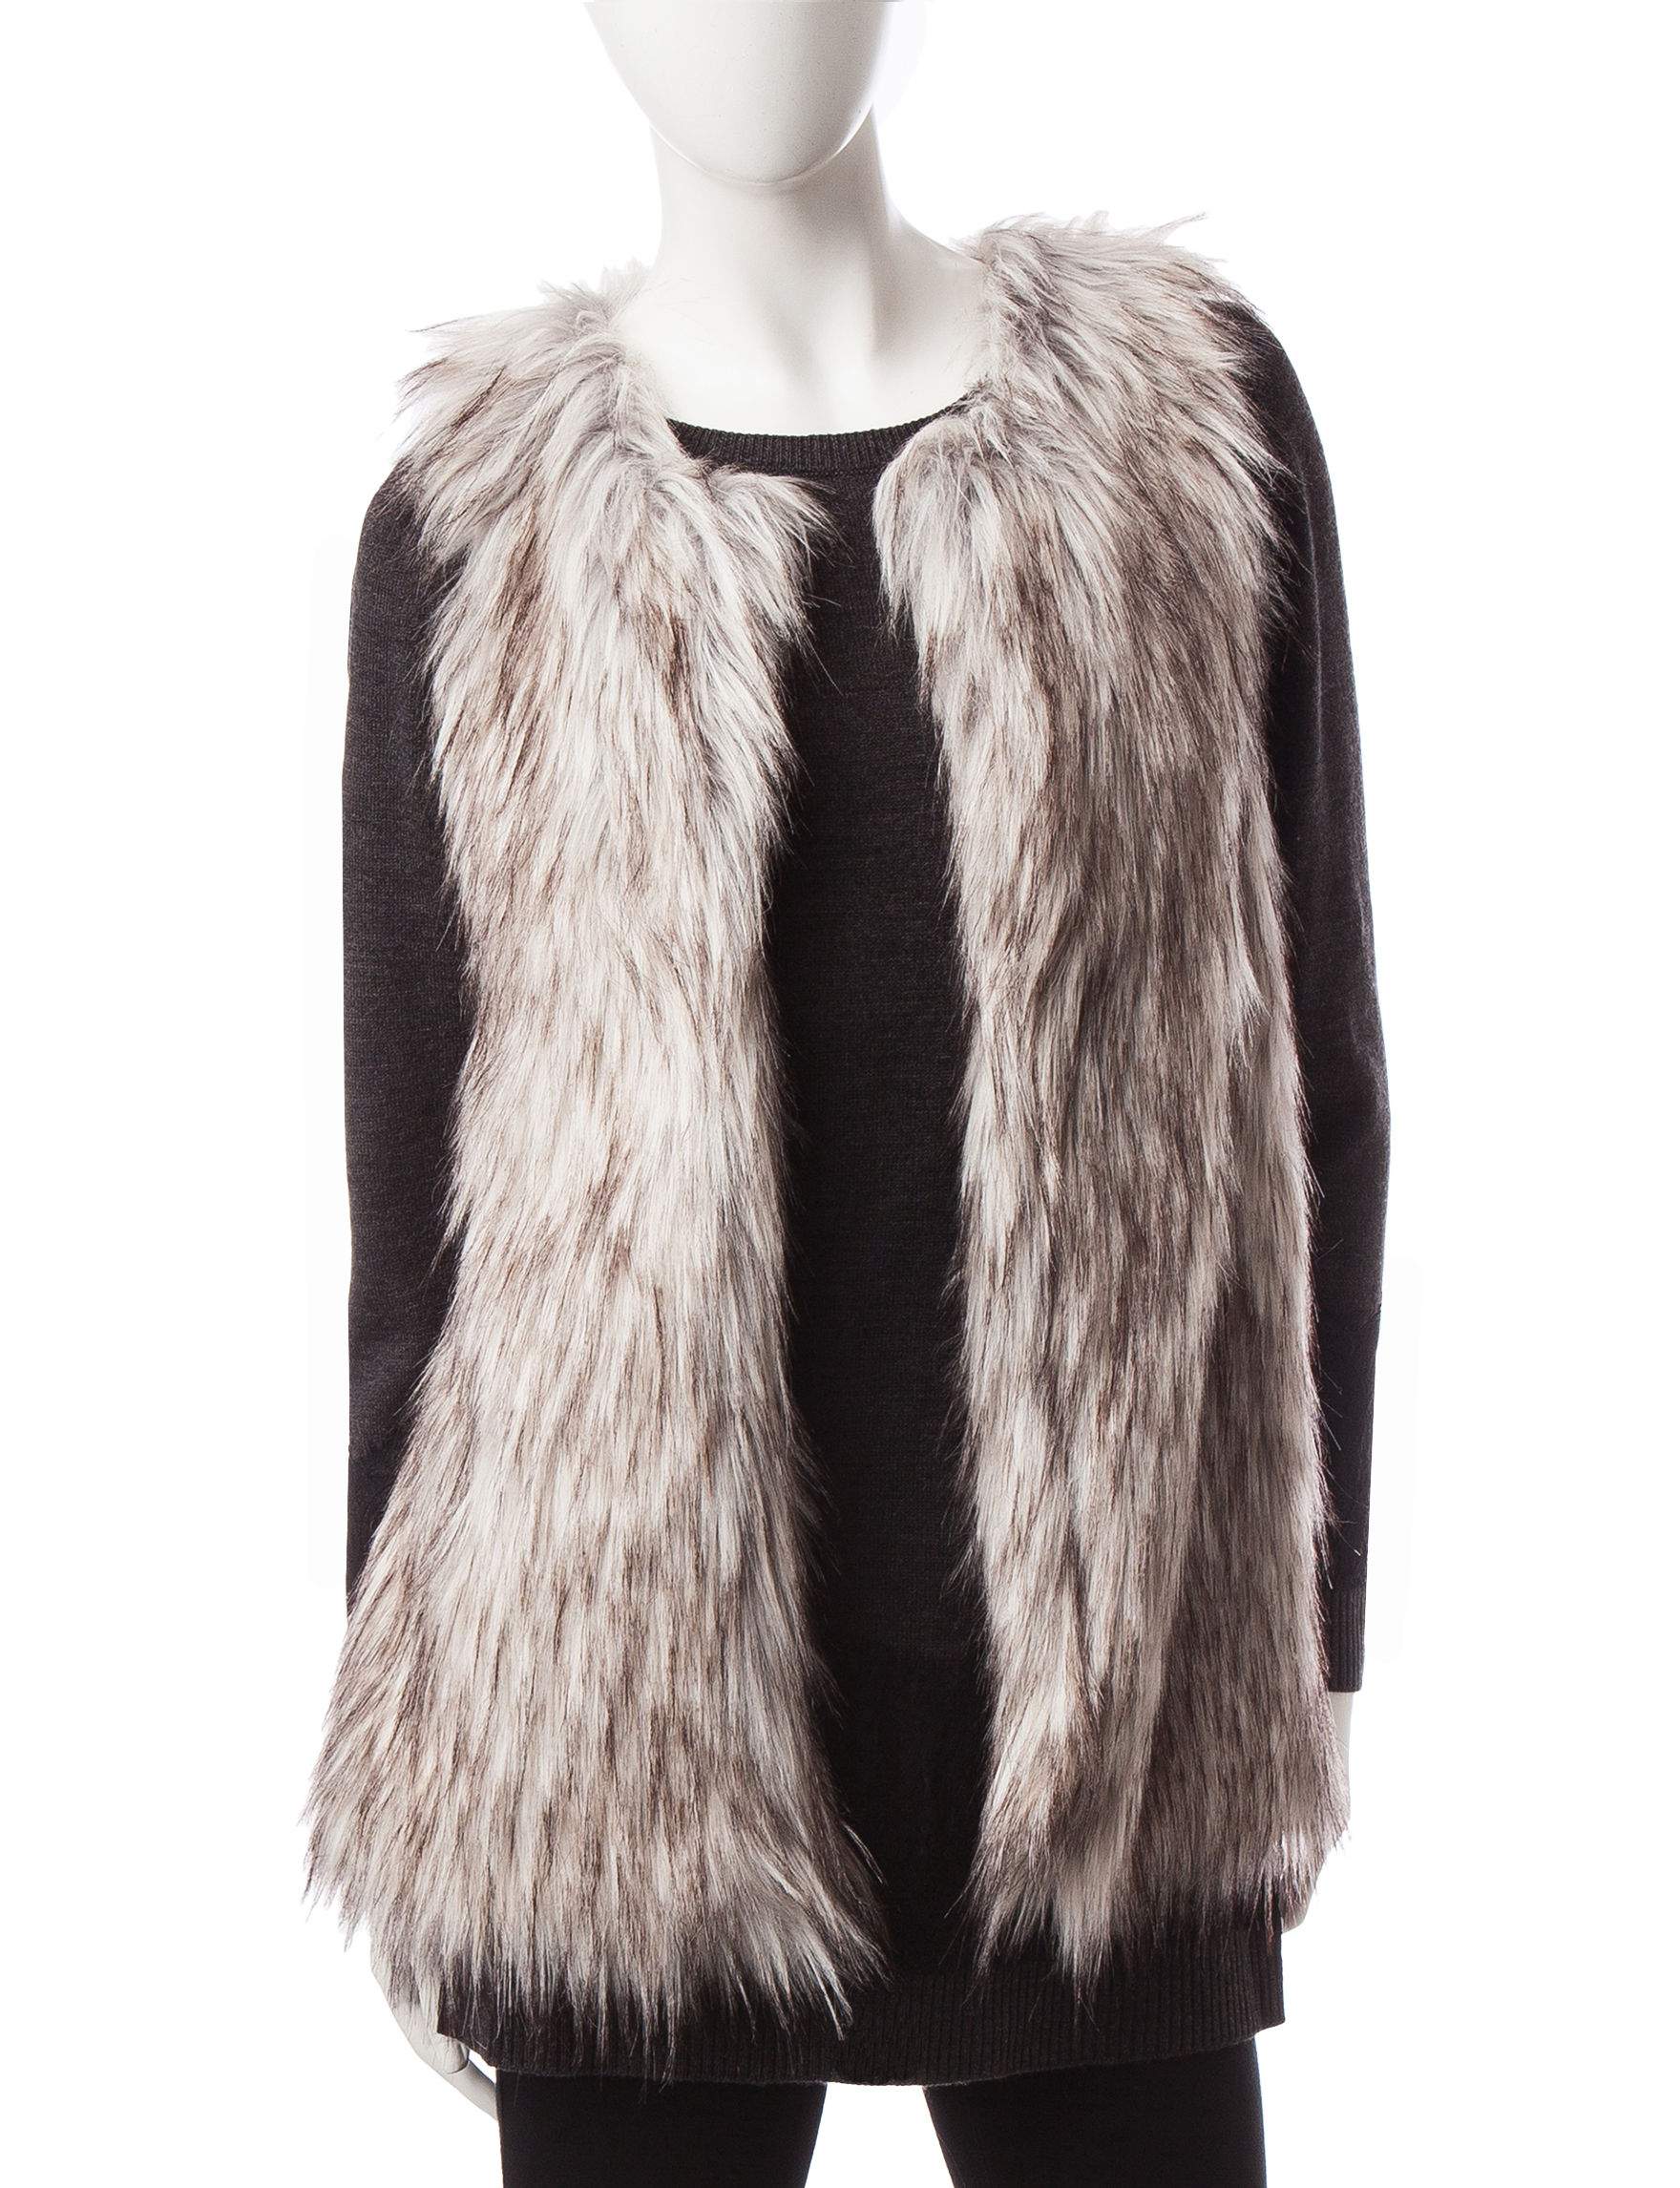 Bring out the animal in you with our cozy collection of faux fur coats and jackets, the perfect accompaniment to any of your outfits. This season, we'll be wrapping up in style whether it's a coat, faux fur vest or jacket. Grey Faux Fur Bomber Jacket more colors + $ Black Faux Shaggy Mongolian Fur Vest more colors + $